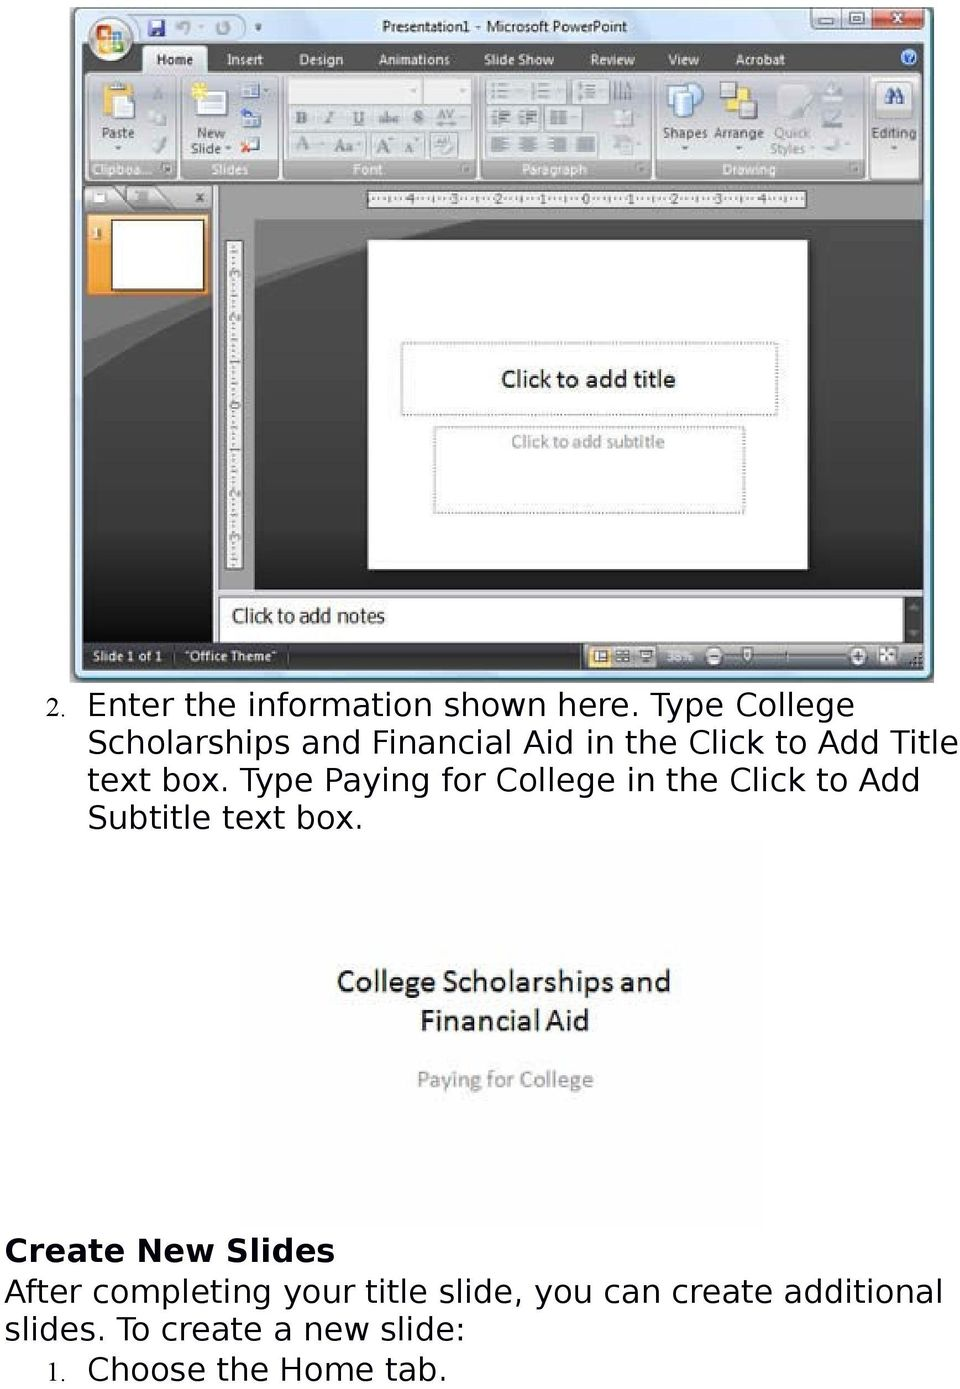 Type Paying for College in the Click to Add Subtitle text box.